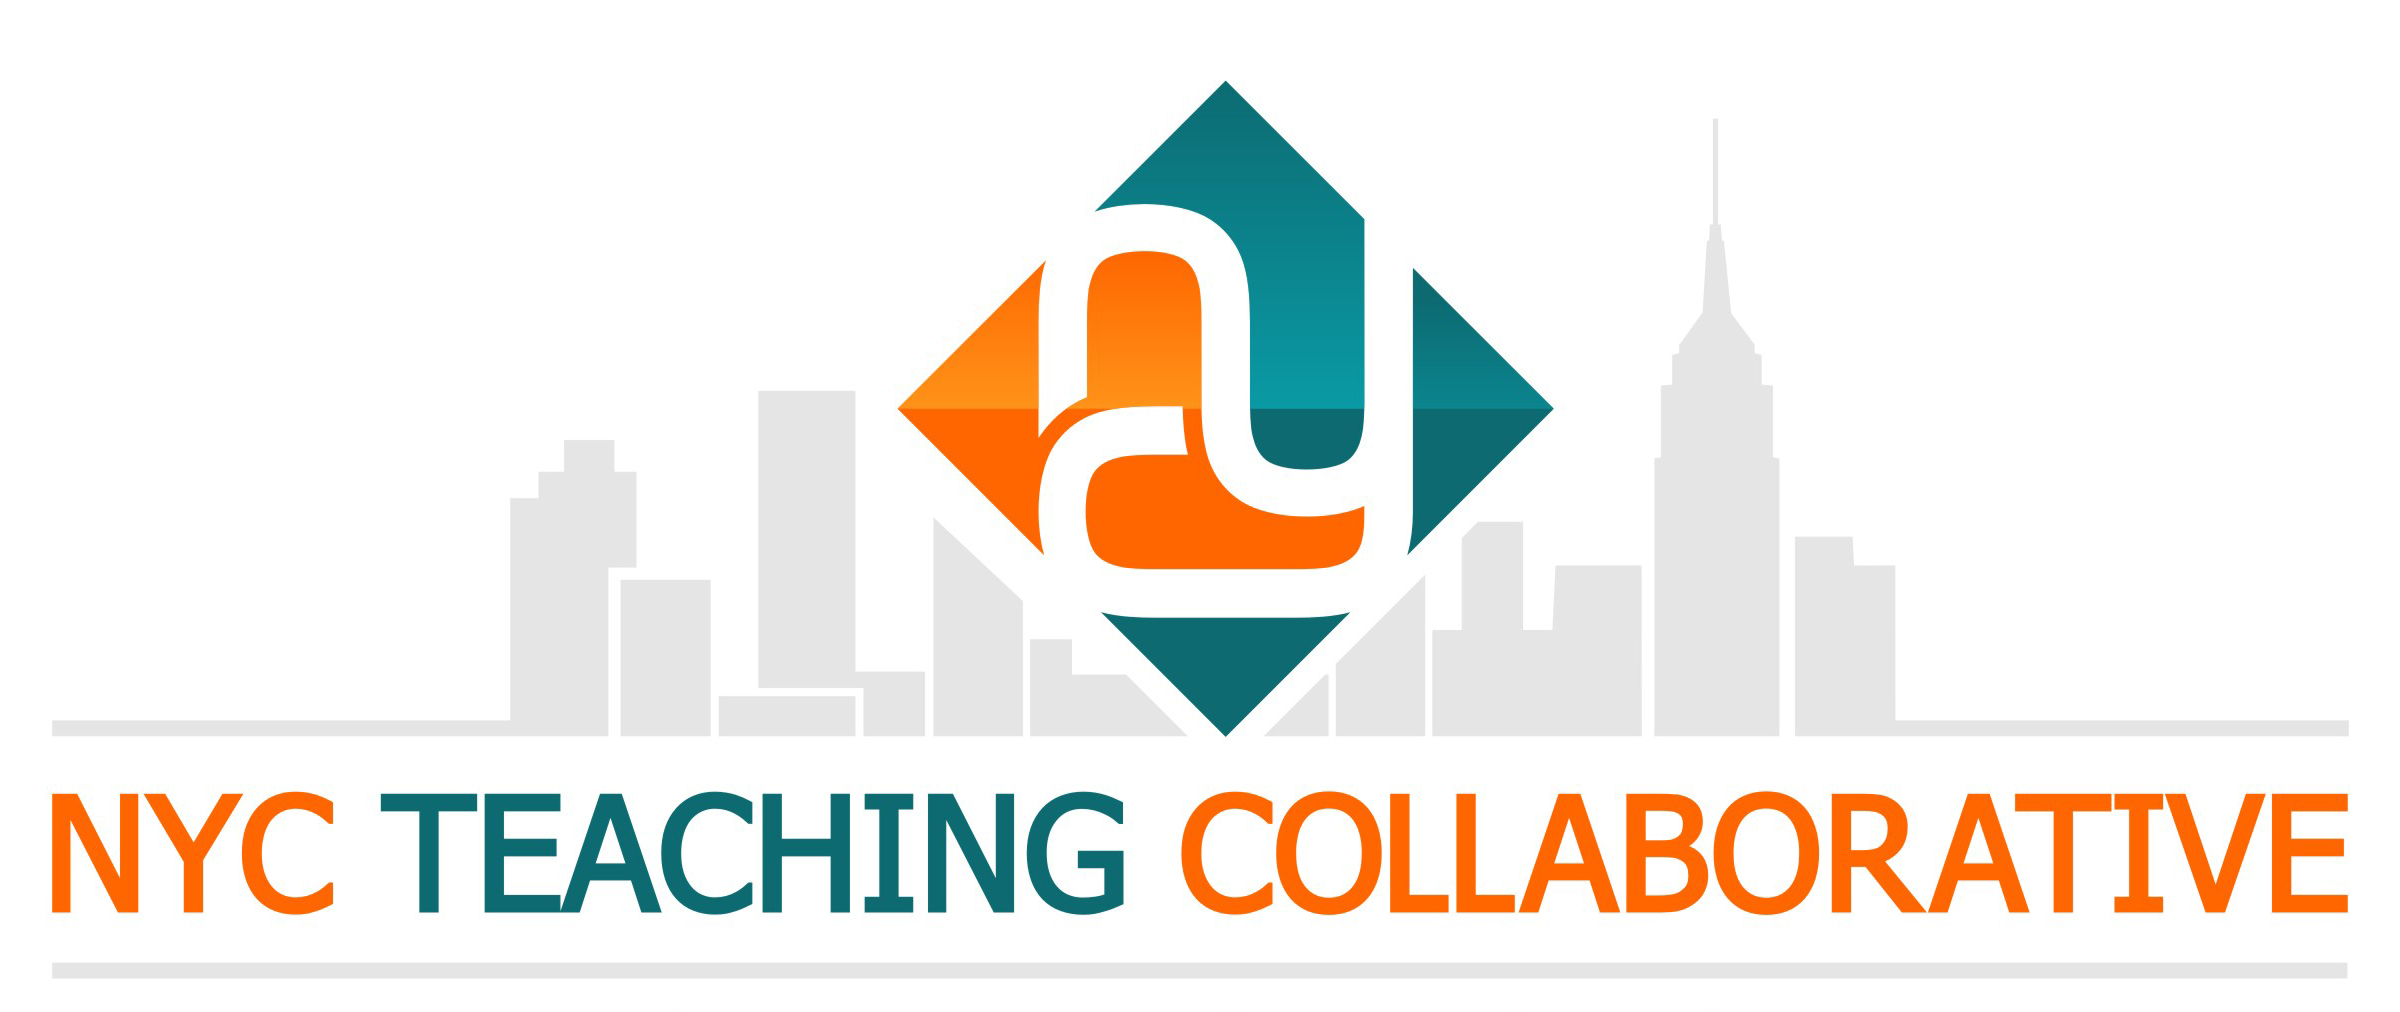 NYC Teaching Collaborative - Support Center Help Center home page